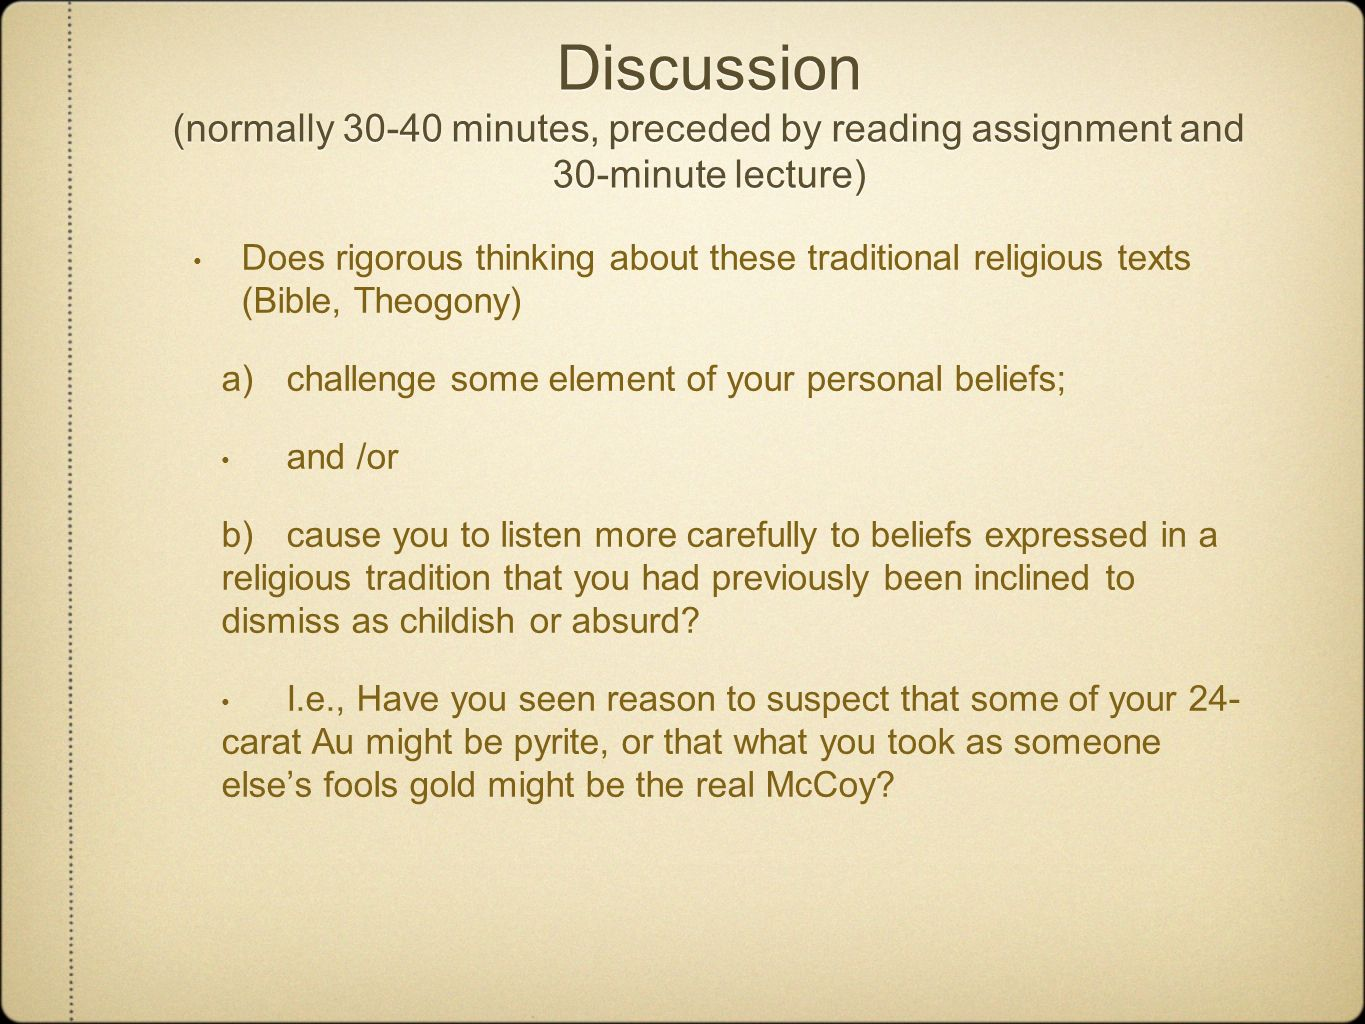 Discussion (normally 30-40 minutes, preceded by reading assignment and 30-minute lecture) Does rigorous thinking about these traditional religious texts (Bible, Theogony) a) challenge some element of your personal beliefs; and /or b) cause you to listen more carefully to beliefs expressed in a religious tradition that you had previously been inclined to dismiss as childish or absurd.